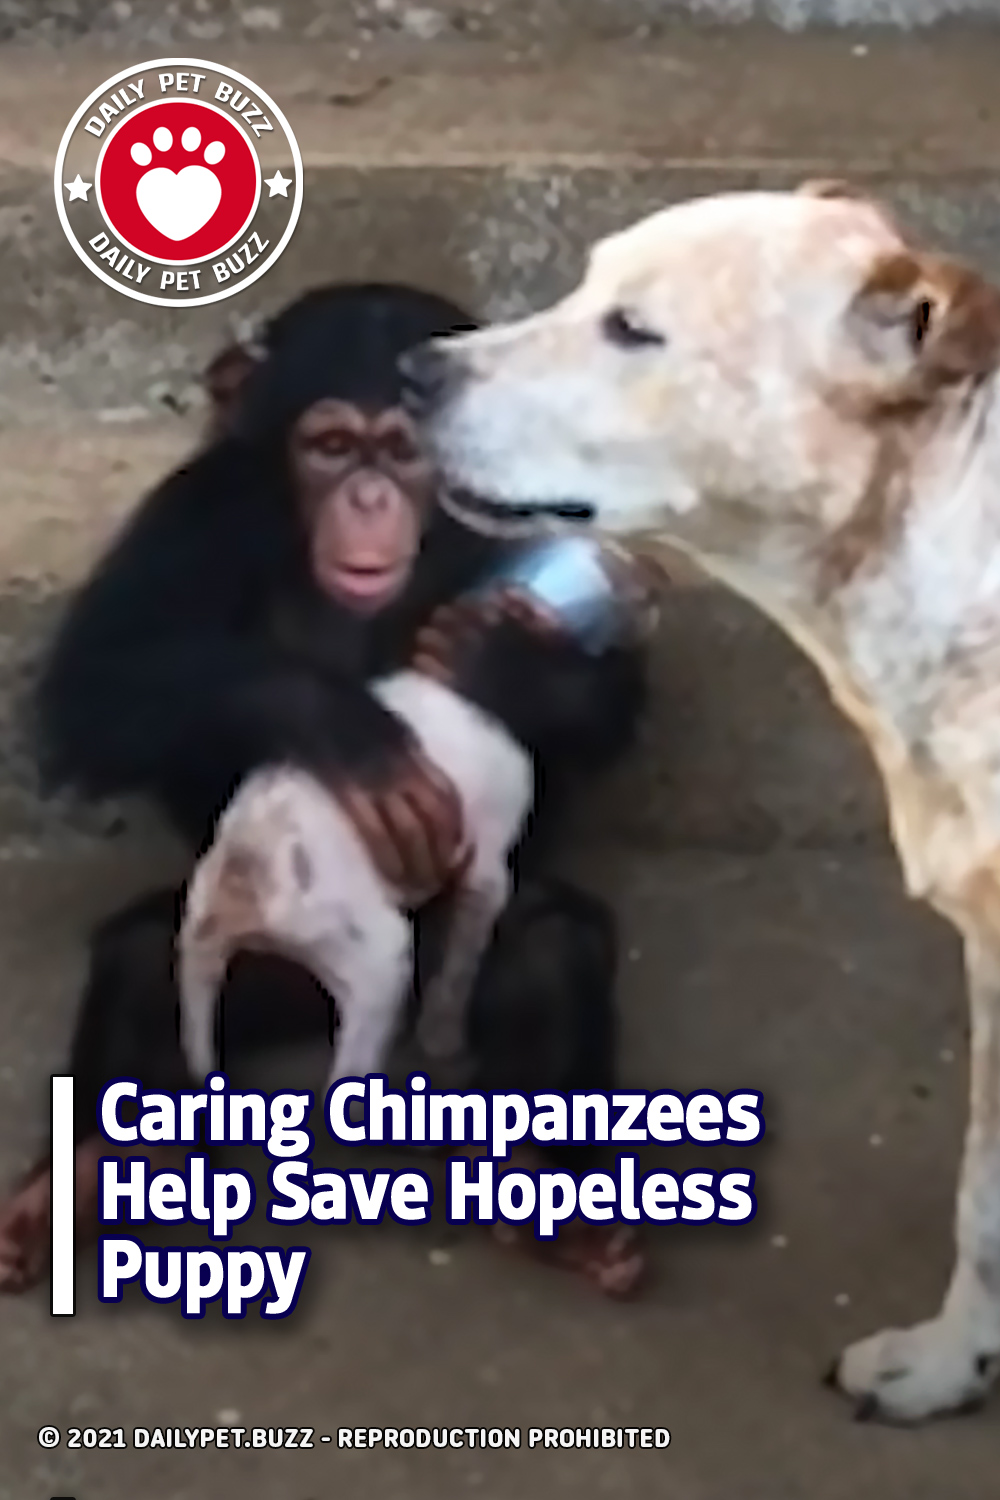 Caring Chimpanzees Help Save Hopeless Puppy